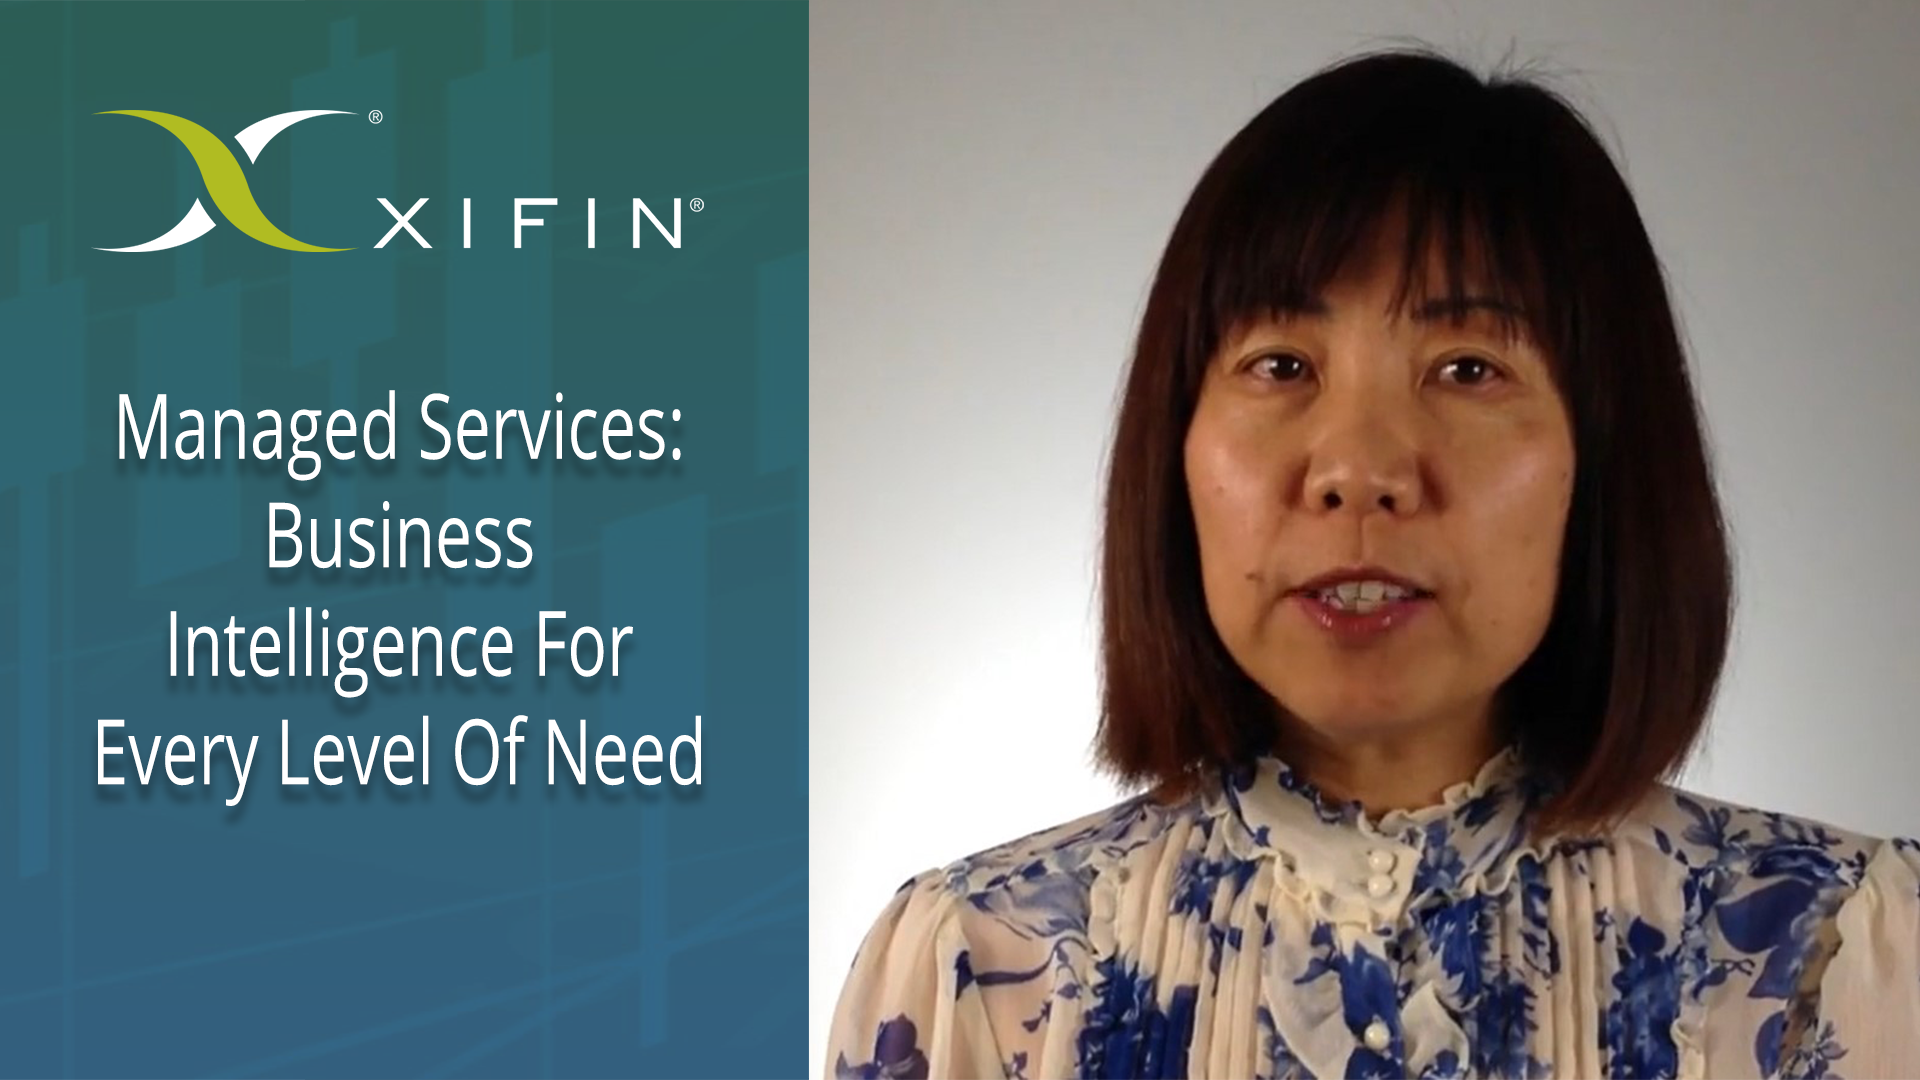 XIFIN Managed Services - Business Intelligence for Every Level of Need